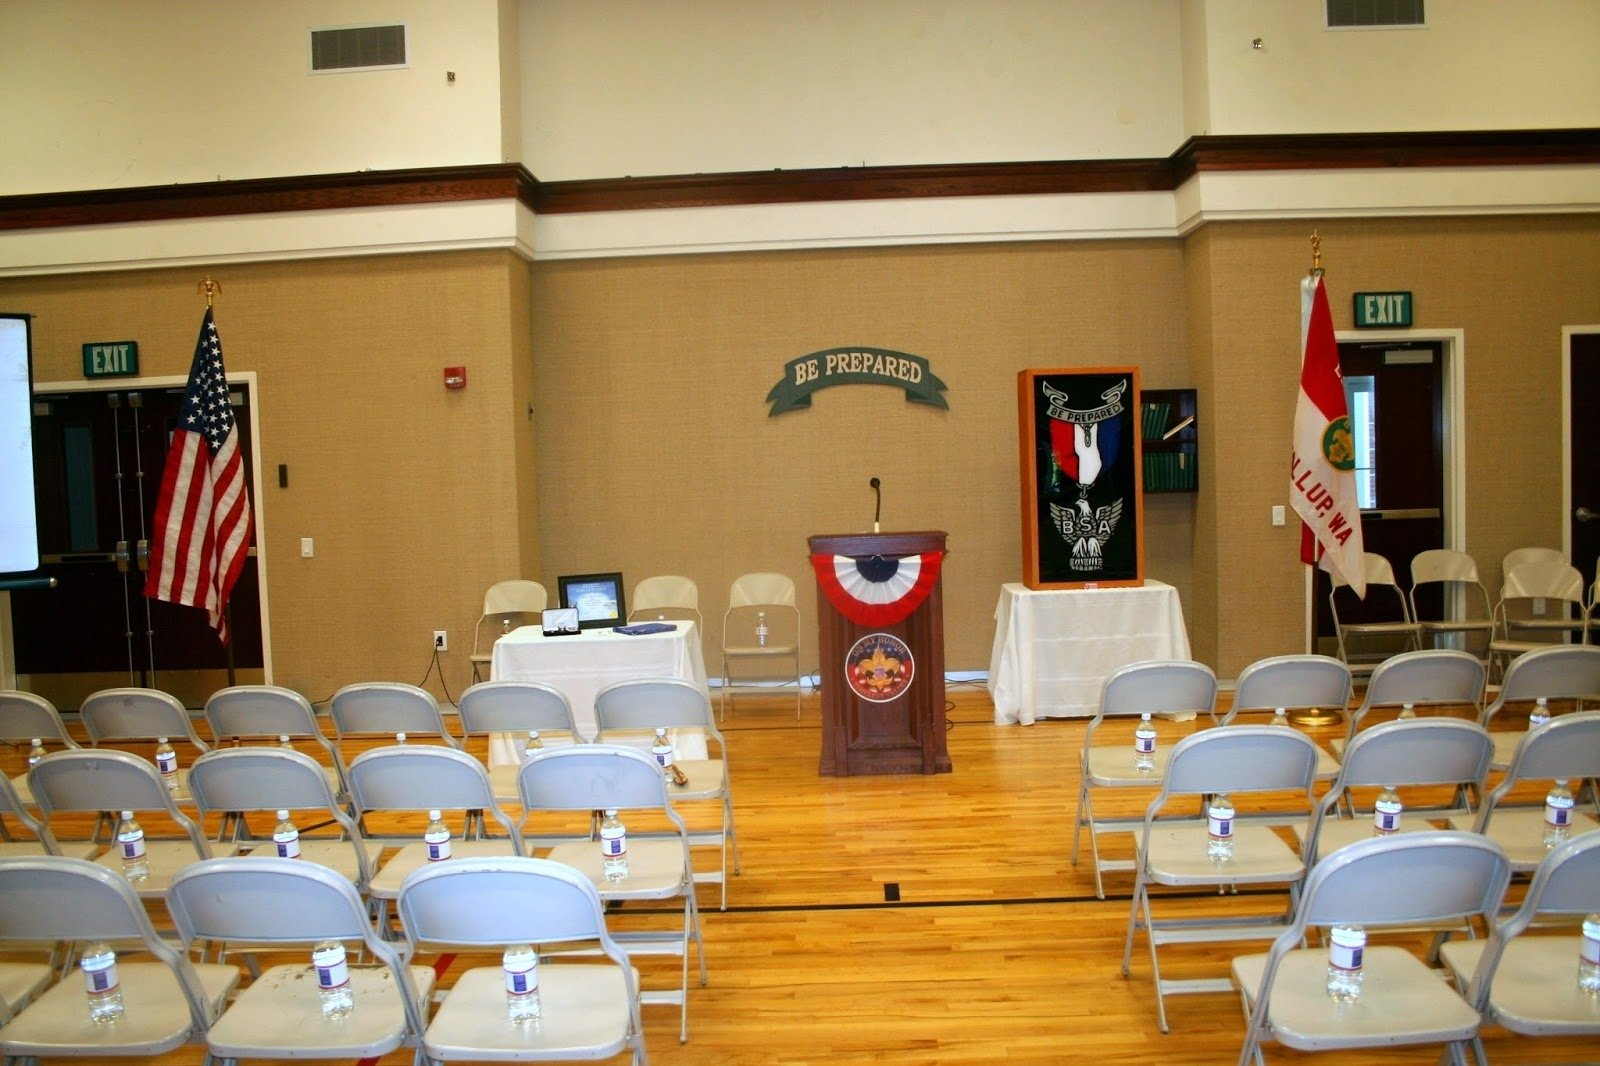 10 Perfect Eagle Court Of Honor Ideas the carver crew an eagle scout court of honor 2